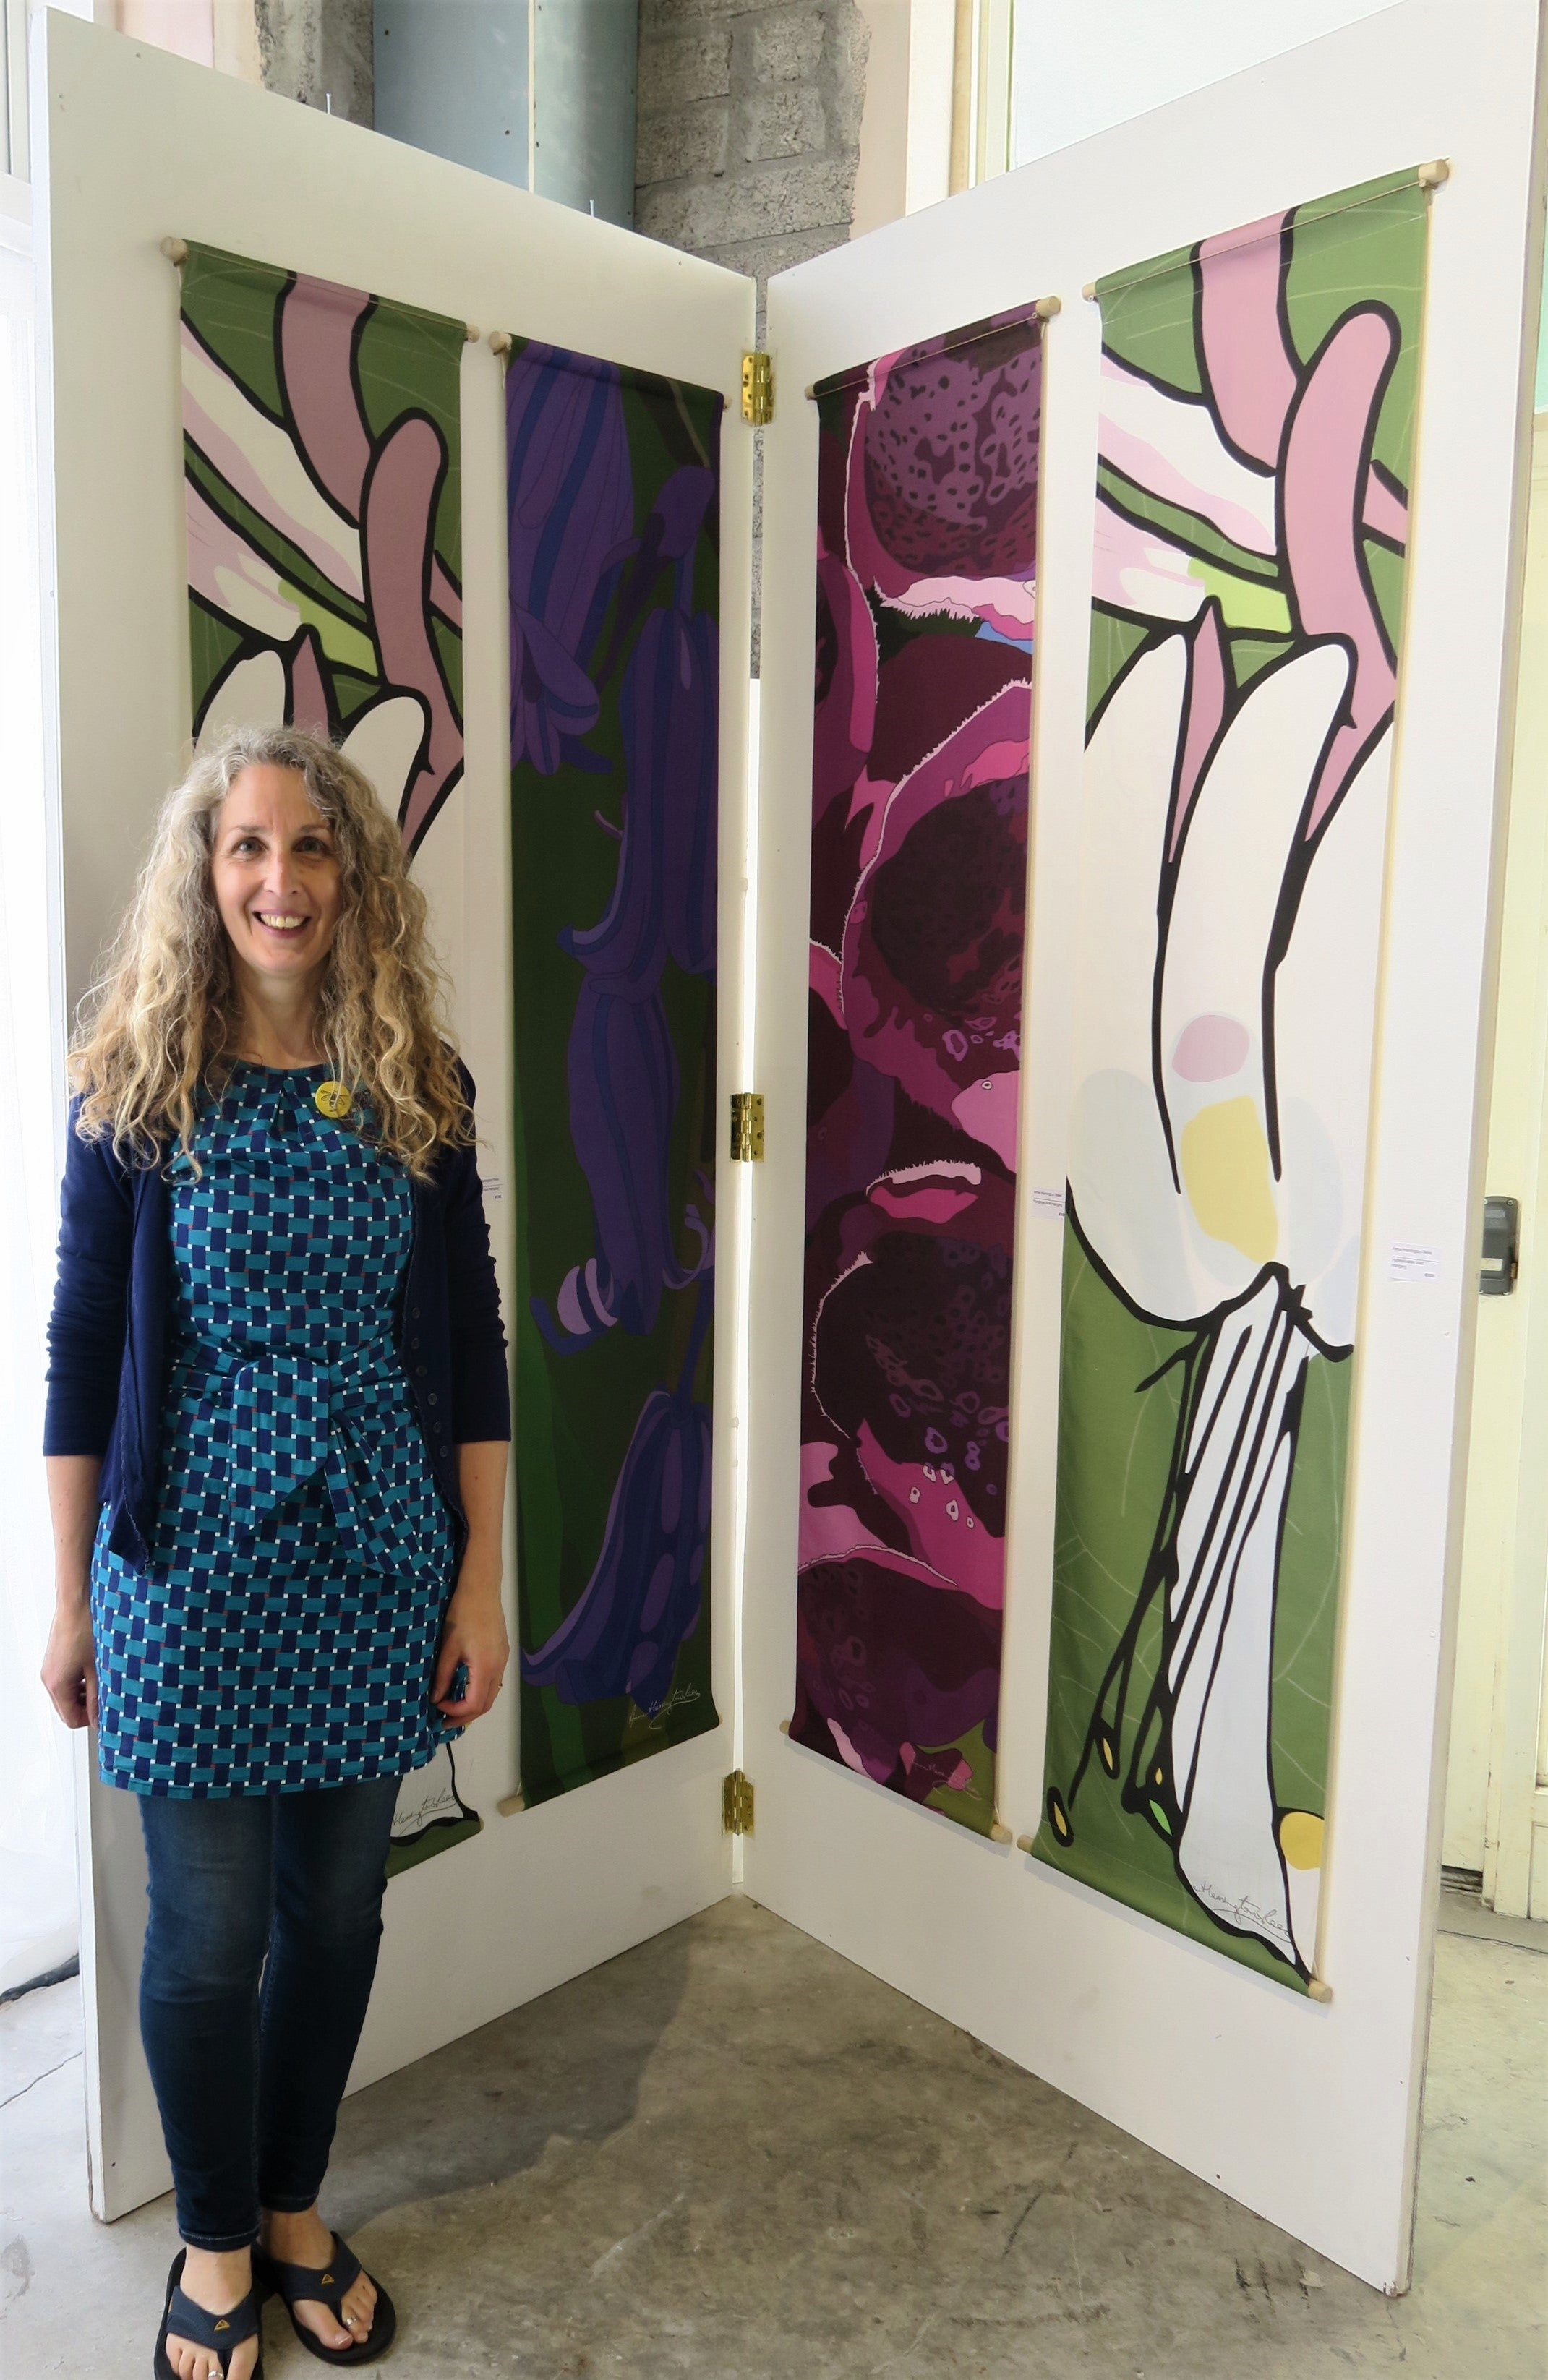 Anne Harrington Rees in front of Honeysuckle, Bluebell and Foxglove wall hangings at the opening of West Cork Creates 'Into the Woods', Skibbereen, August 2019